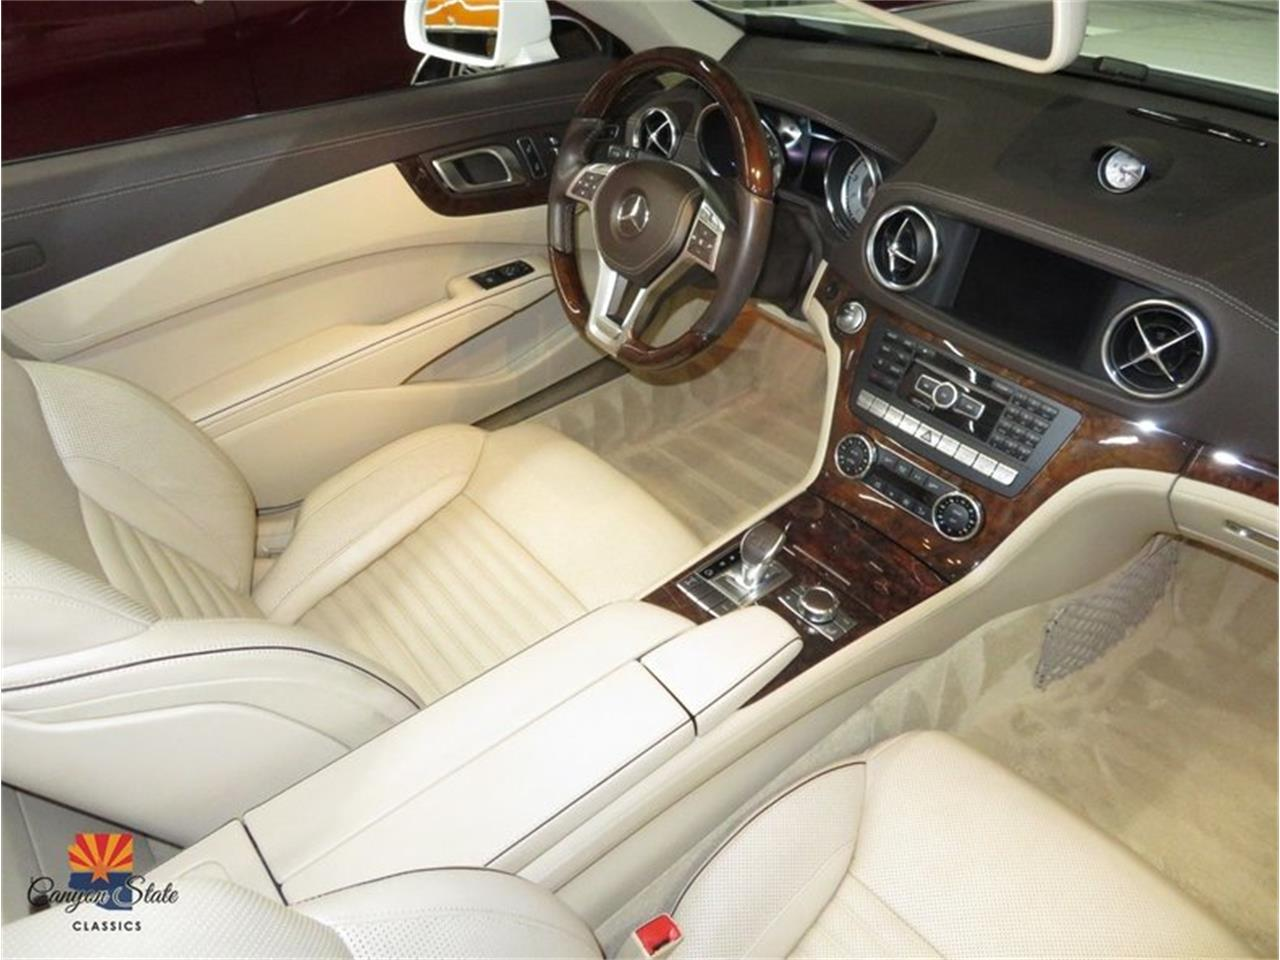 2013 Mercedes-Benz SL-Class for sale in Tempe, AZ – photo 91